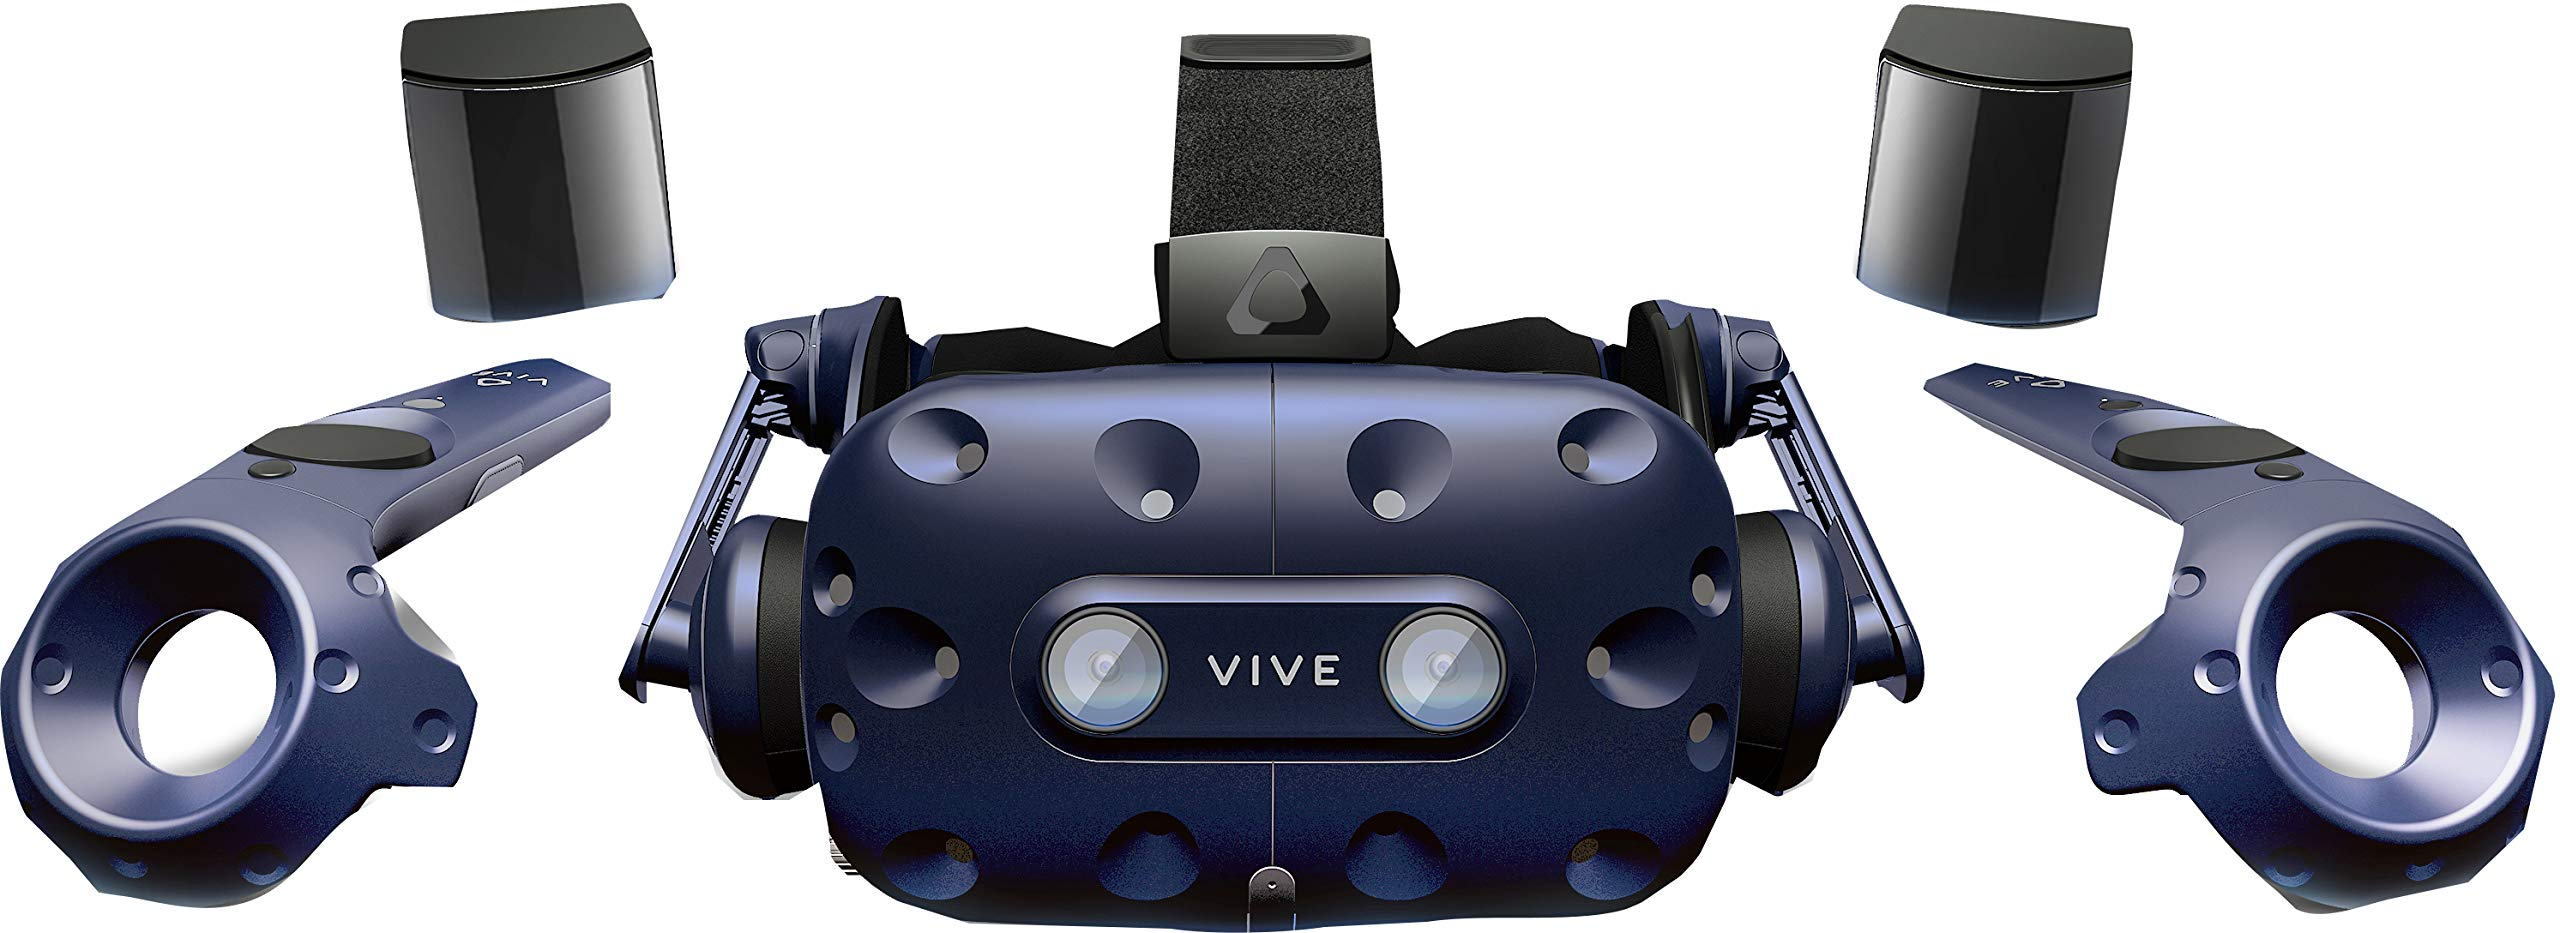 HP HTC kit Complet Vive Pro VR System – Casques Audio